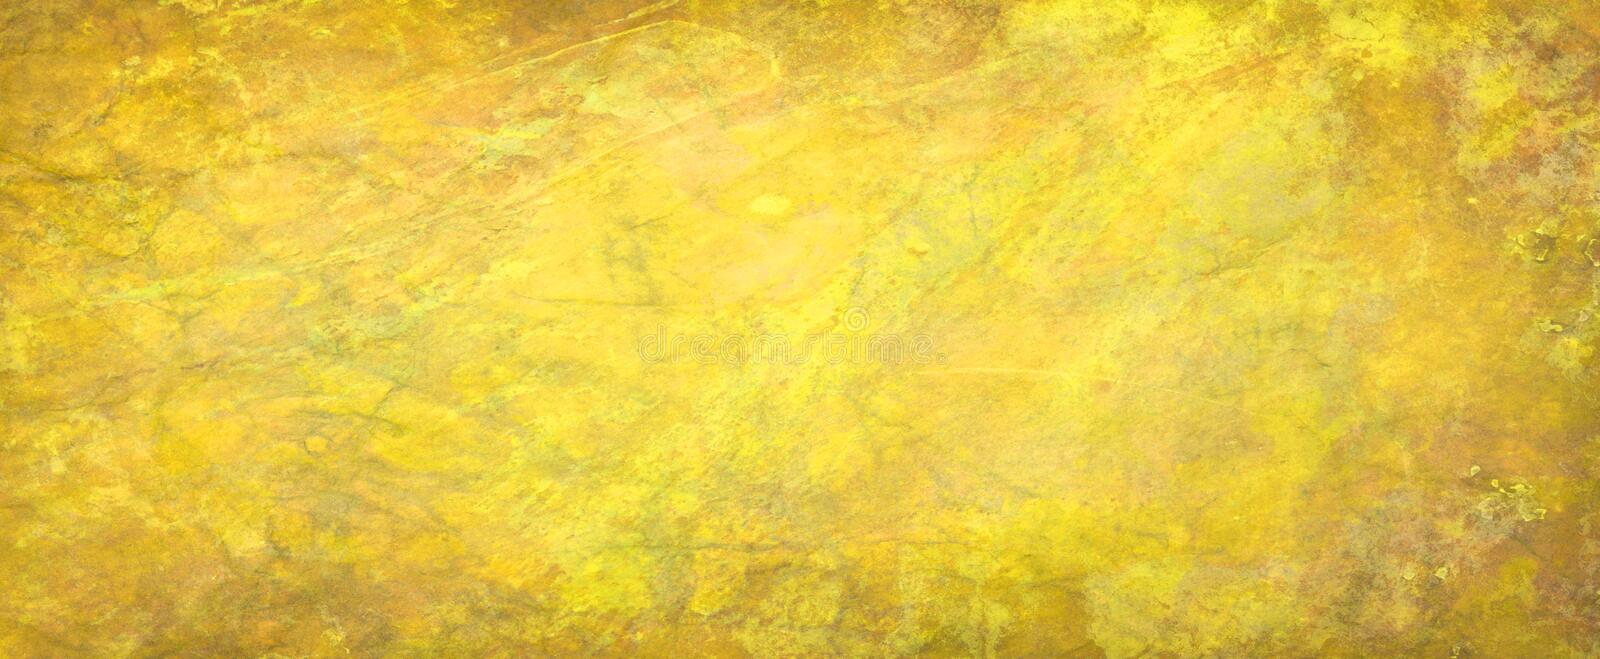 Yellow gold background texture, abstract rough surface paper illustration with old vintage grunge texture stock image